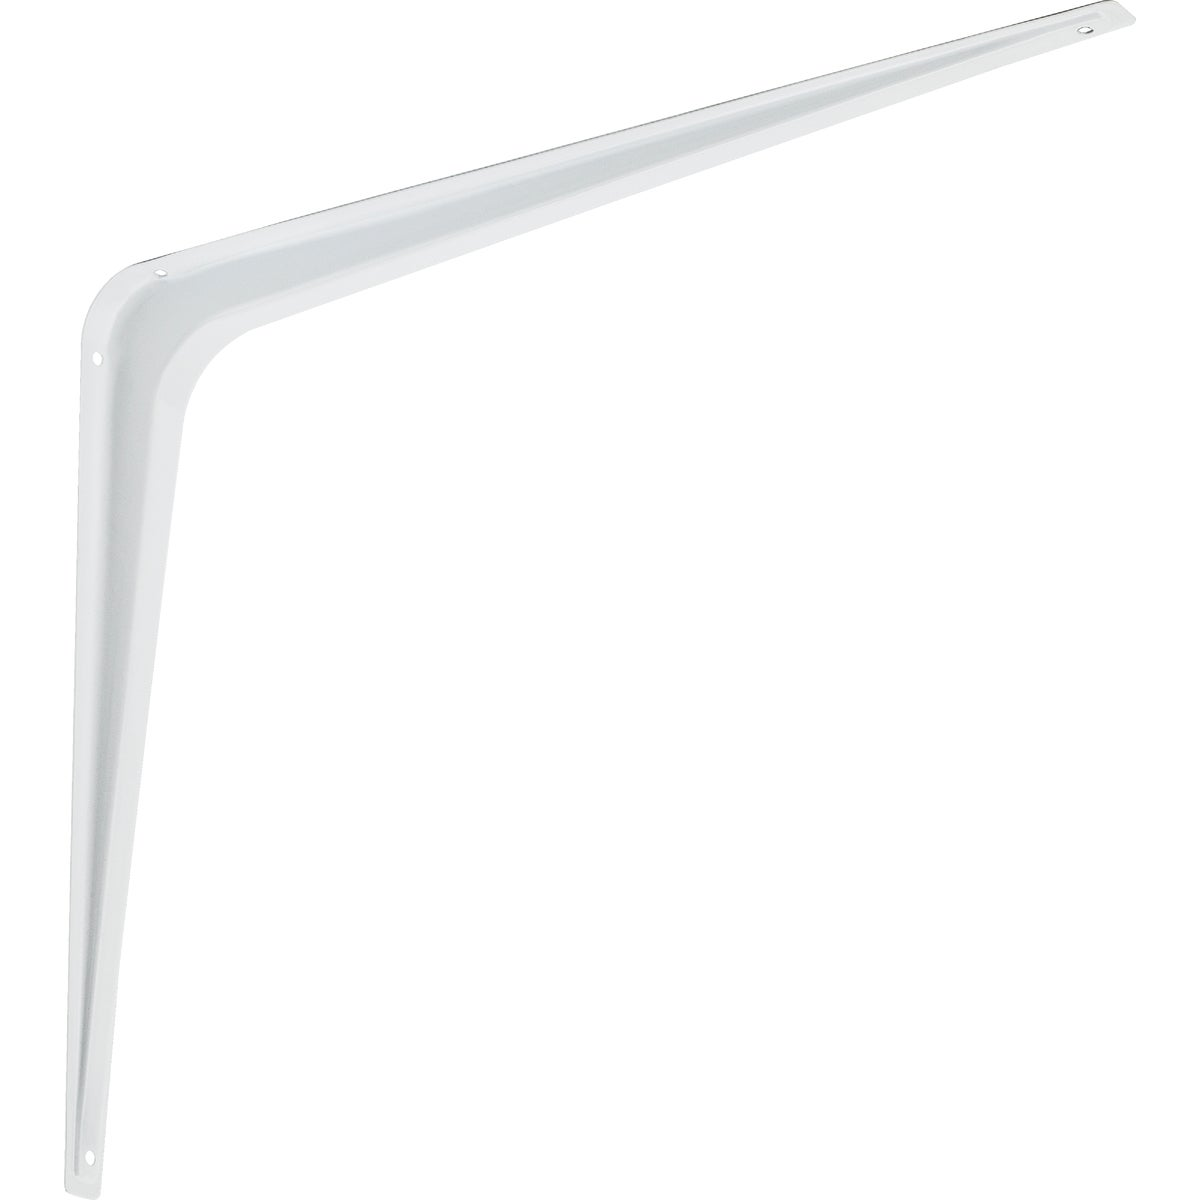 12X14 WHT SHELF BRACKET - N245779 by National Mfg Co